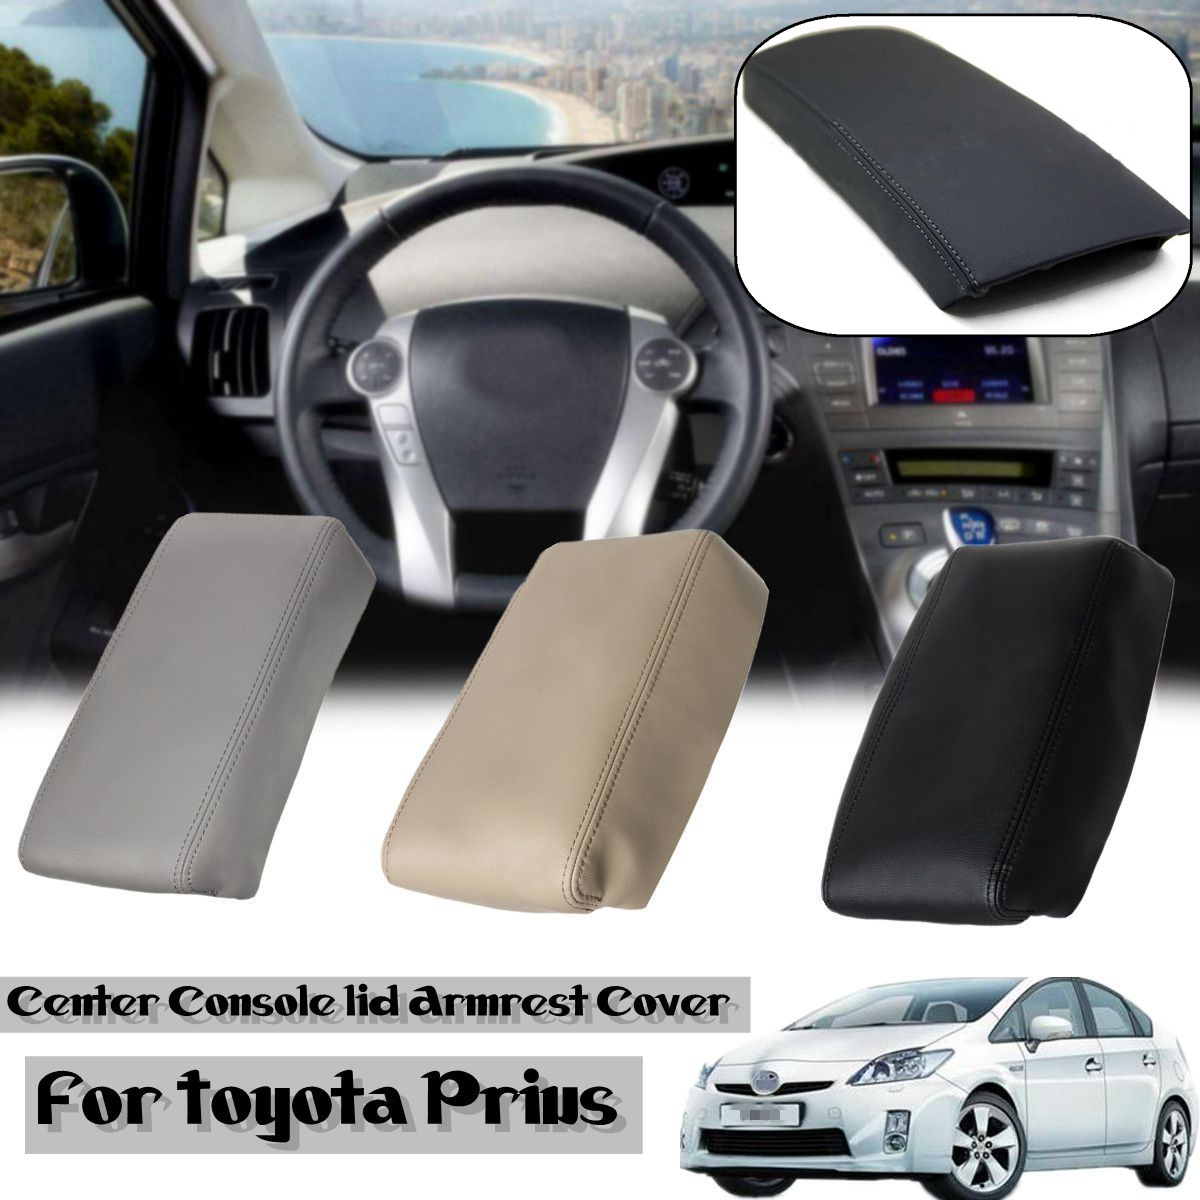 PU Leather Car Center Console Armrest Cover Auto Arm Rest Box Pad Lid Cover Protection for Toyota Prius 2004-2009 fit for audi a4 b6 b7 armrest arm rest center console storage box lid cover car interior styling 2002 2003 2004 2005 2006 2007